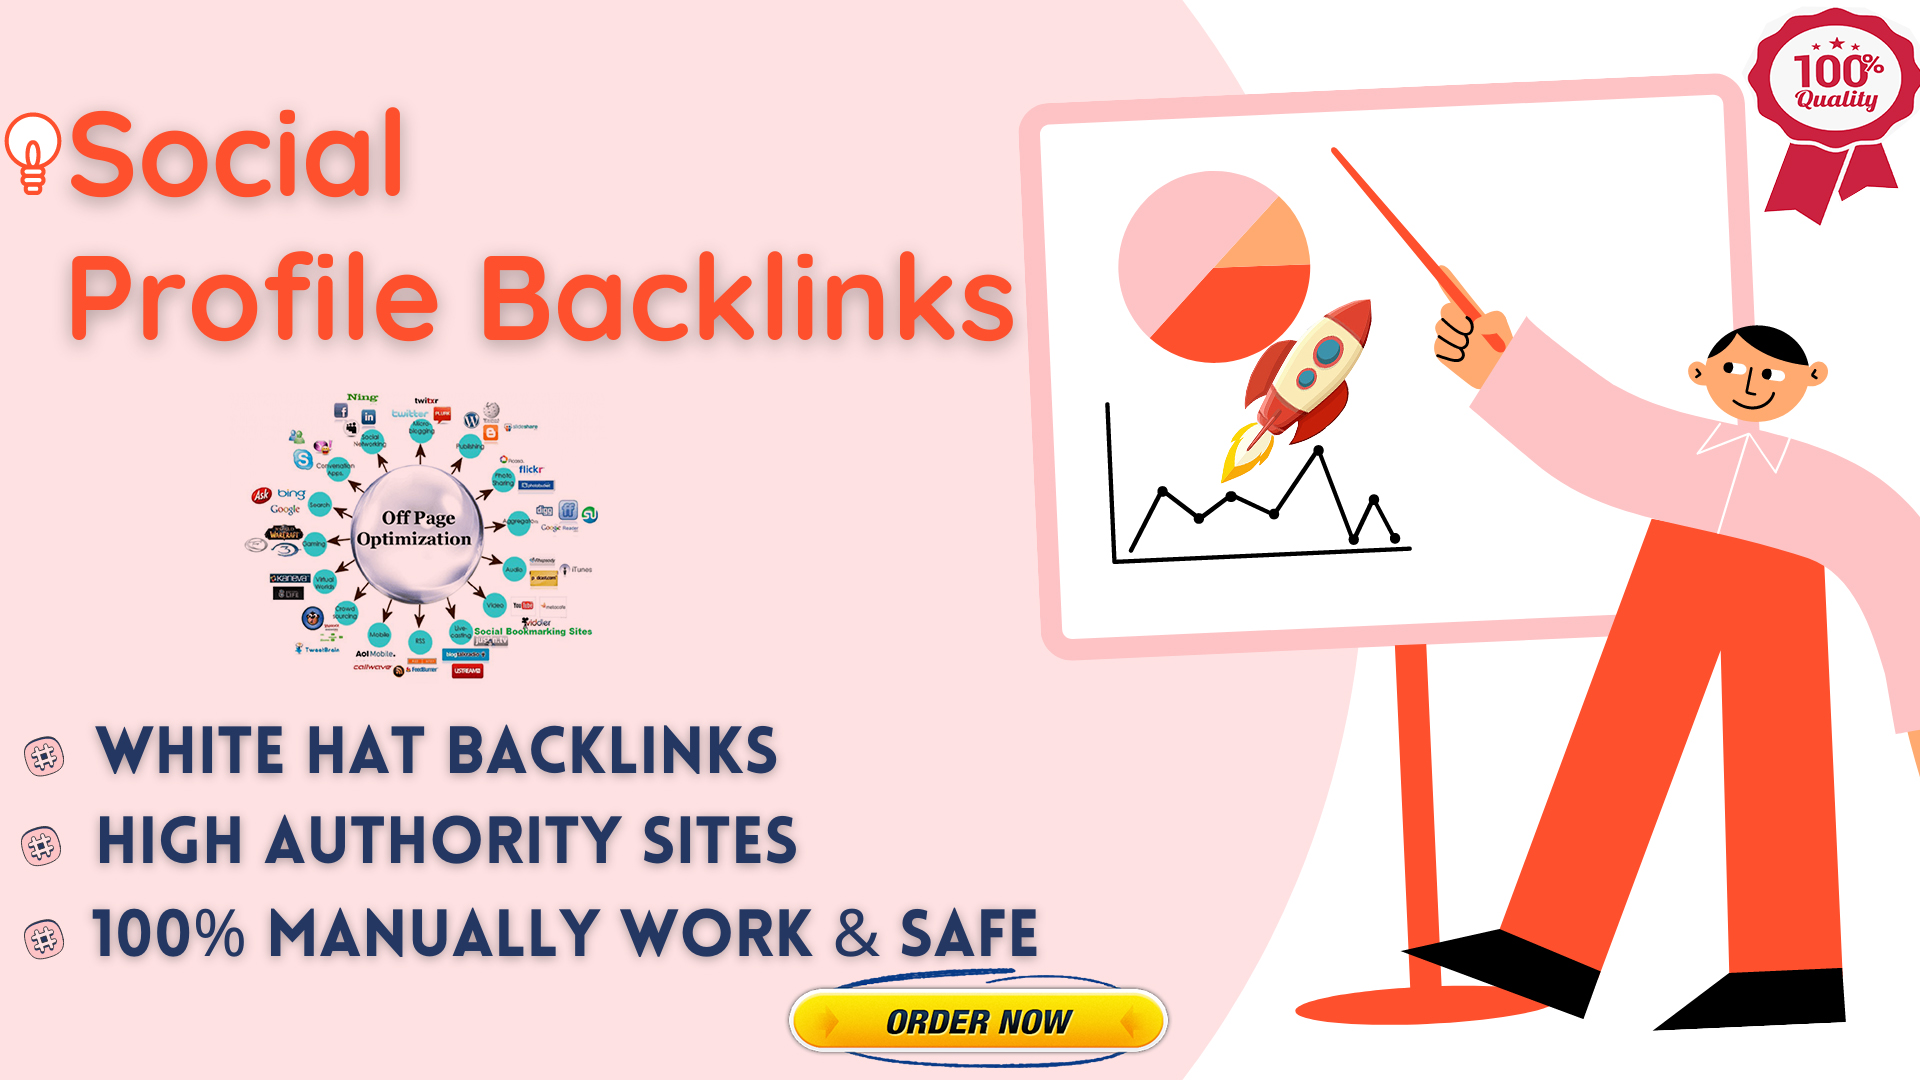 I Will Provide 80 Social Profile Creation High Quality White Hat Backlinks, Link Building